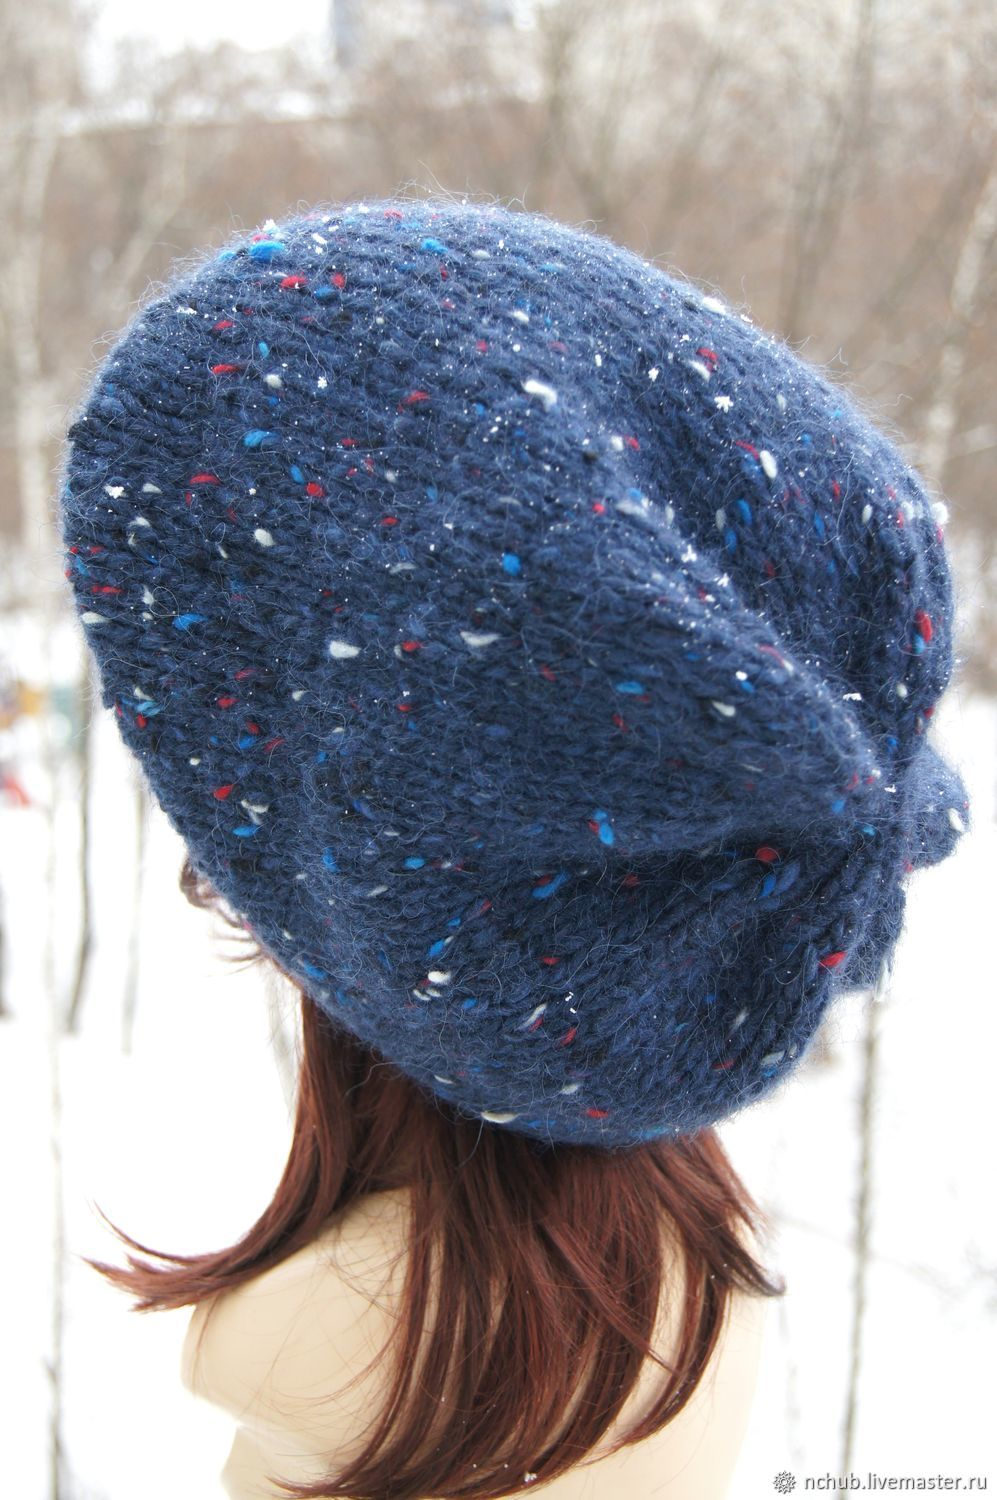 6b6bce5926c6d Little pleasures · Berets handmade. Takes Blue volume knitted from Icelandic  wool 100%.